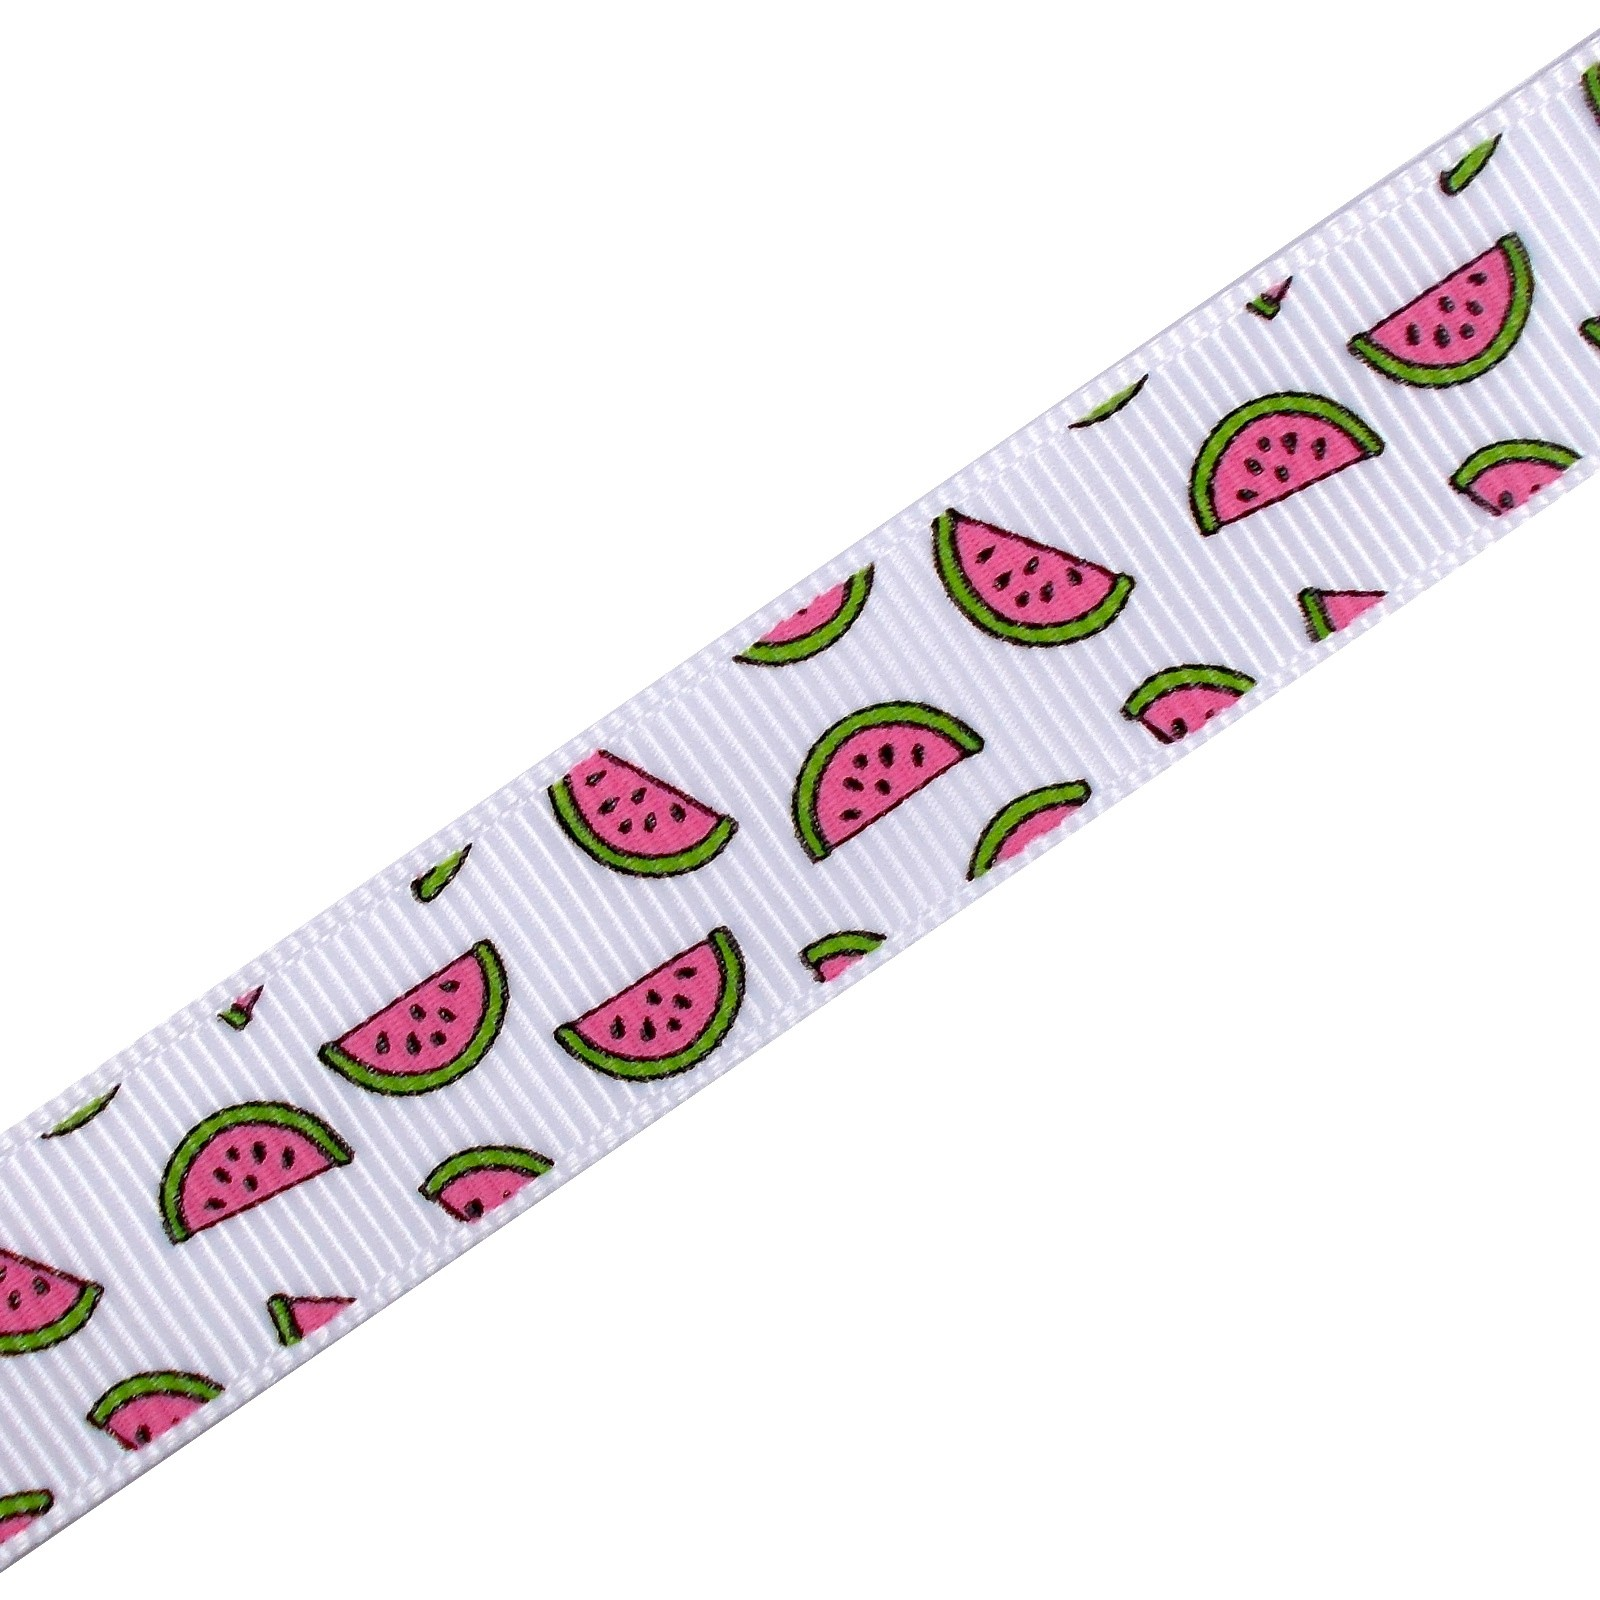 Tropical Print Grosgrain Ribbon 16mm Wide Watermelon 2 metre length